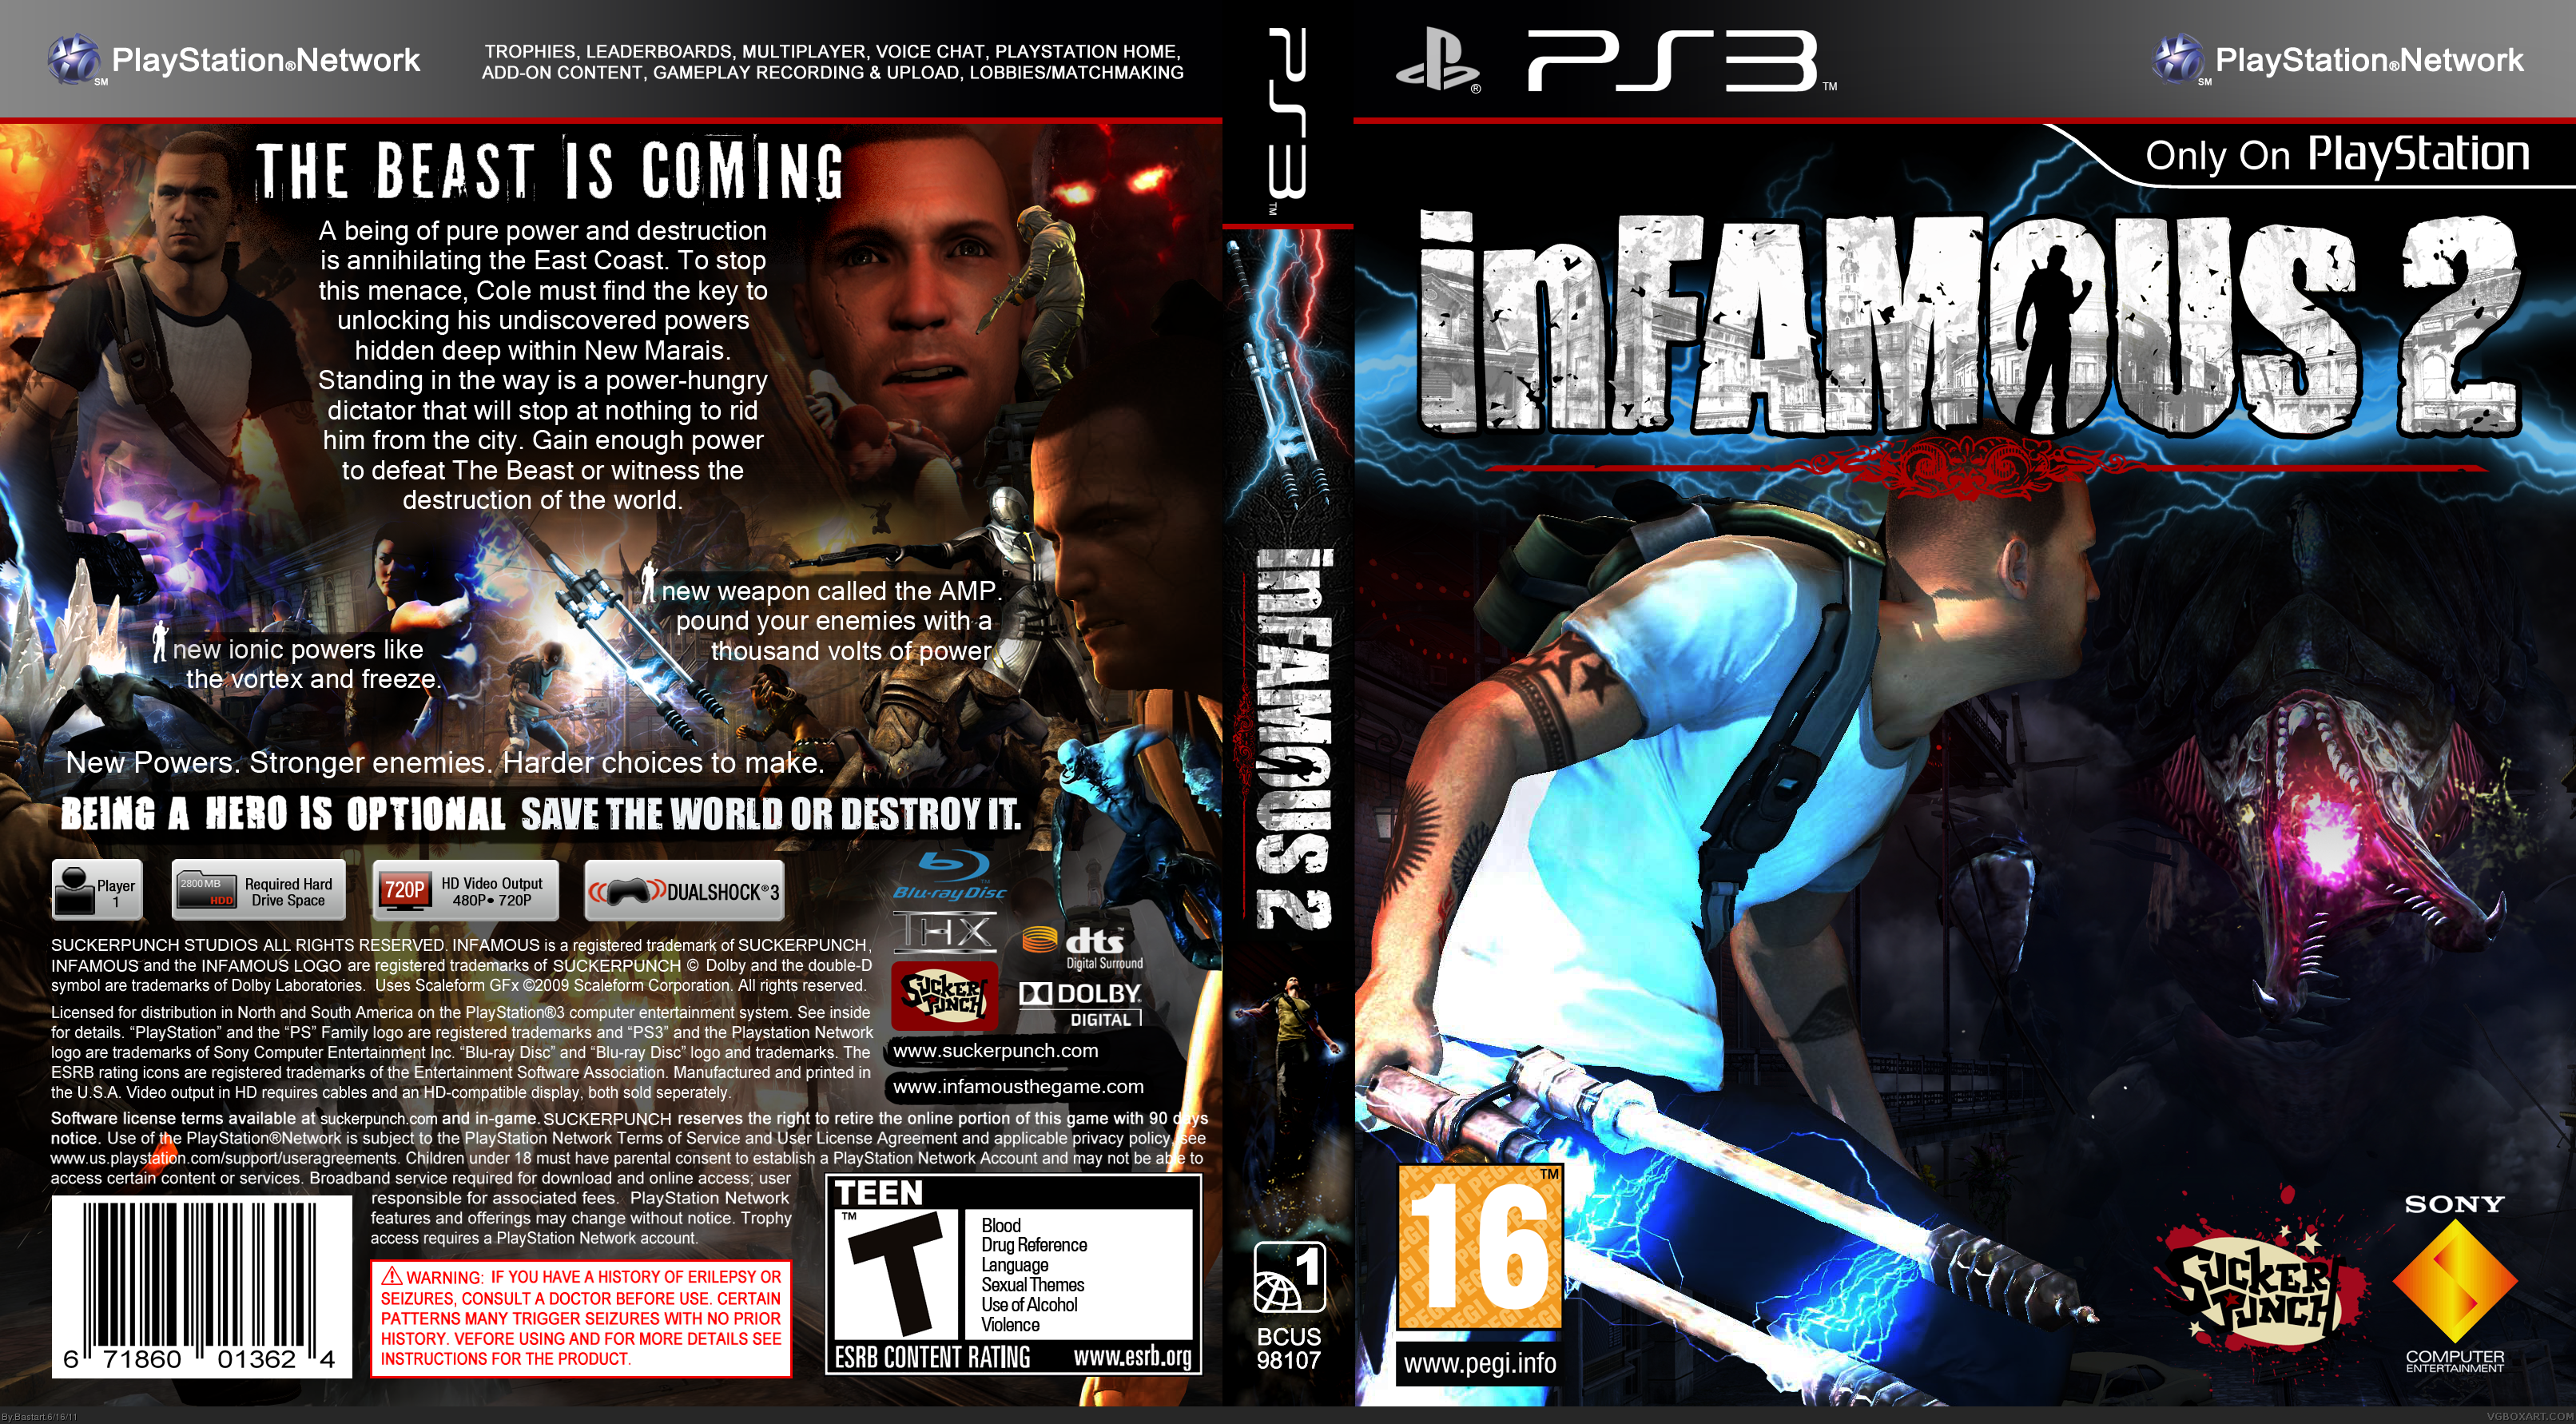 Infamous 2 Playstation 3 Box Art Cover By Bastart